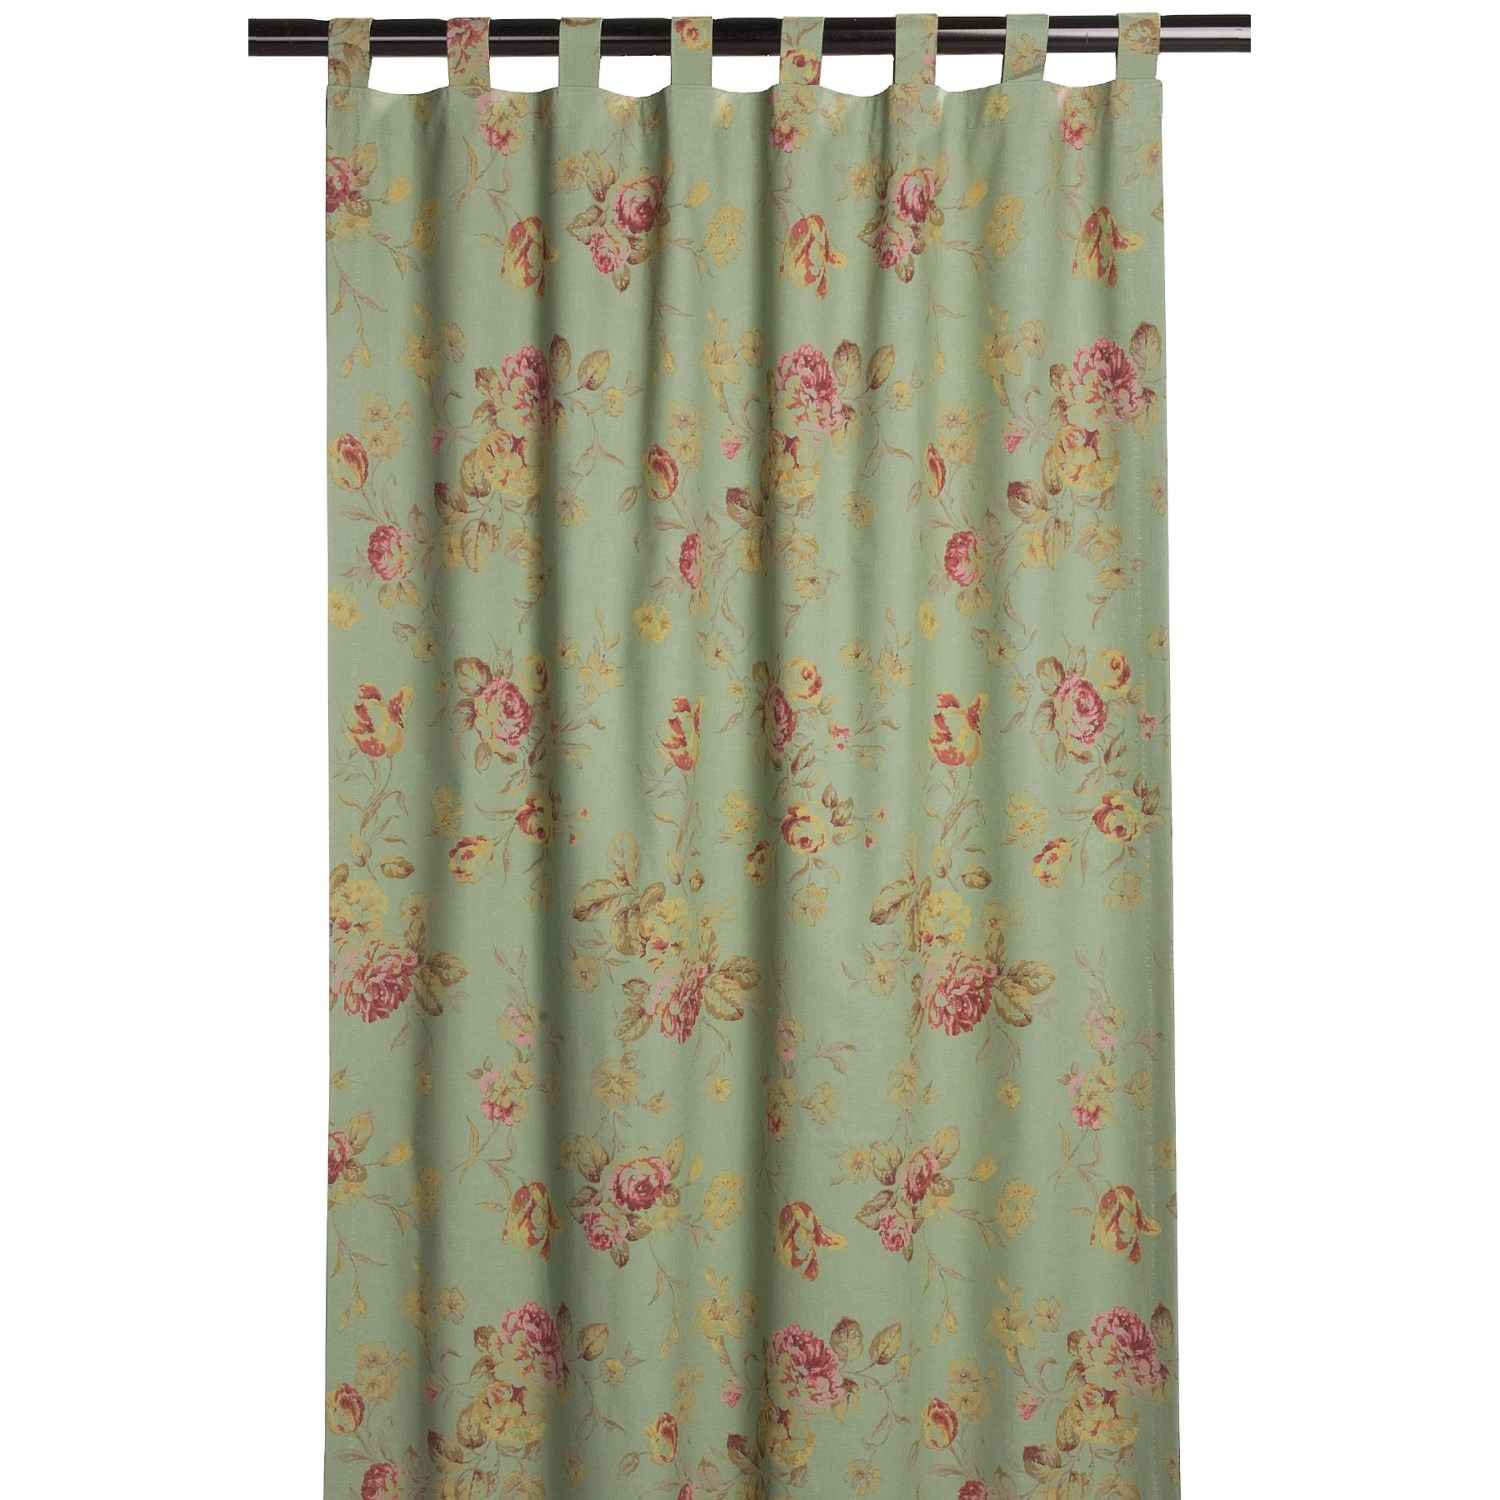 Tab Top Curtains Australia Habitat By Commonwealth Home Fashions Cabbage Rose Curtain